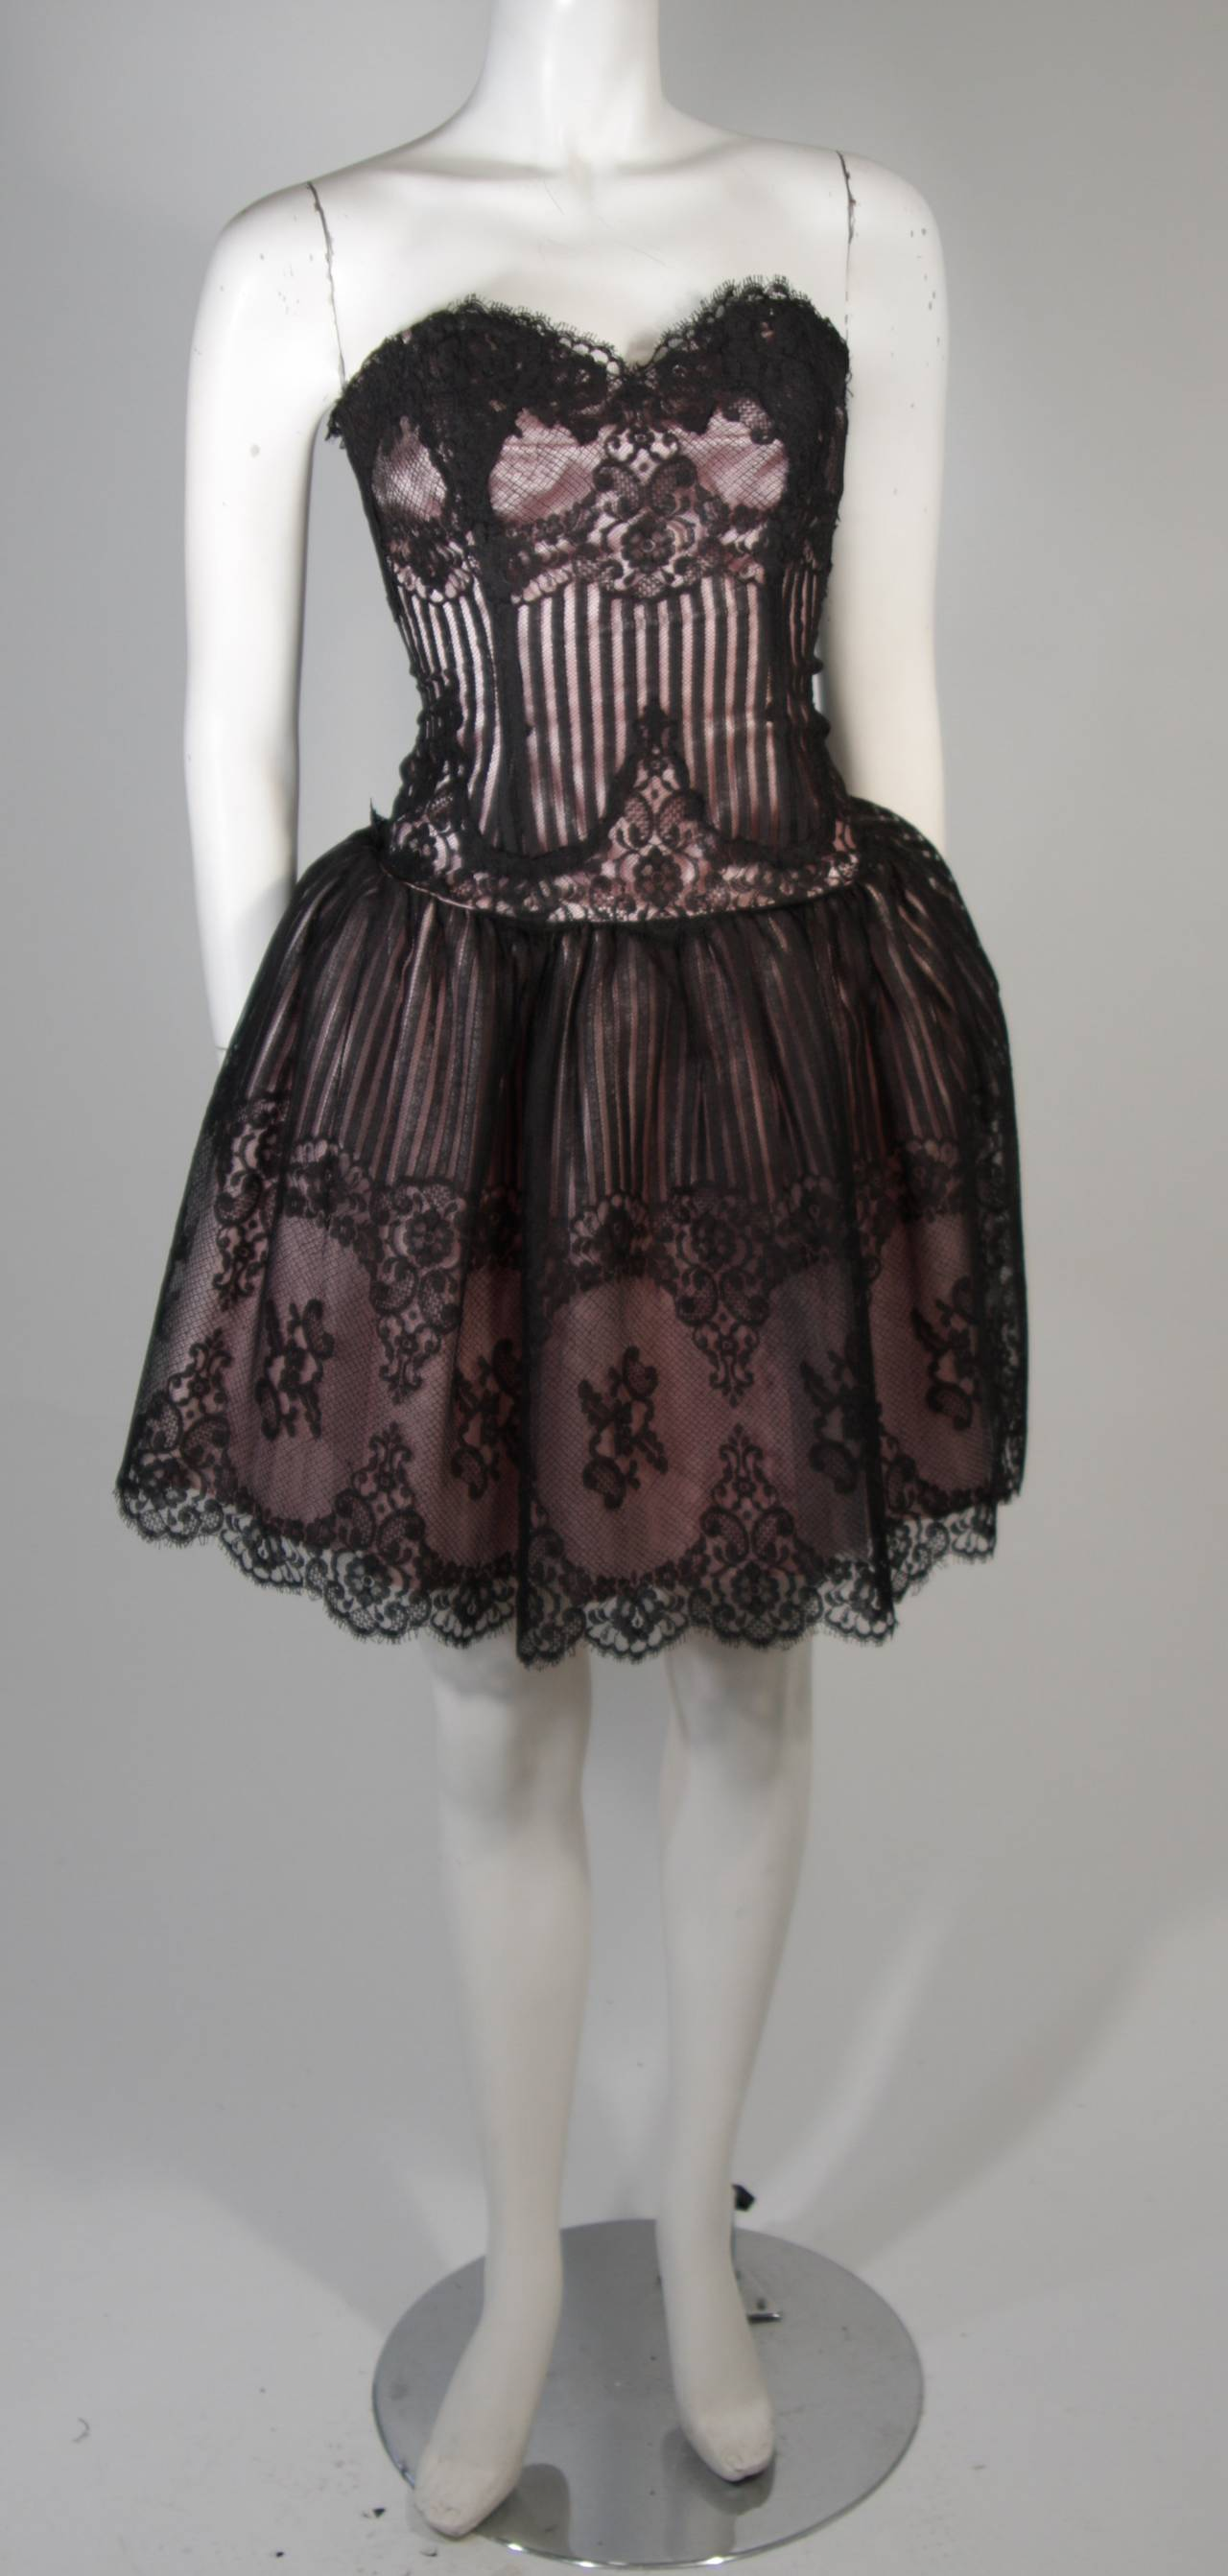 Victor Costa Strapless Black Lace Cocktail Dress with Pink Satin Size 40 4